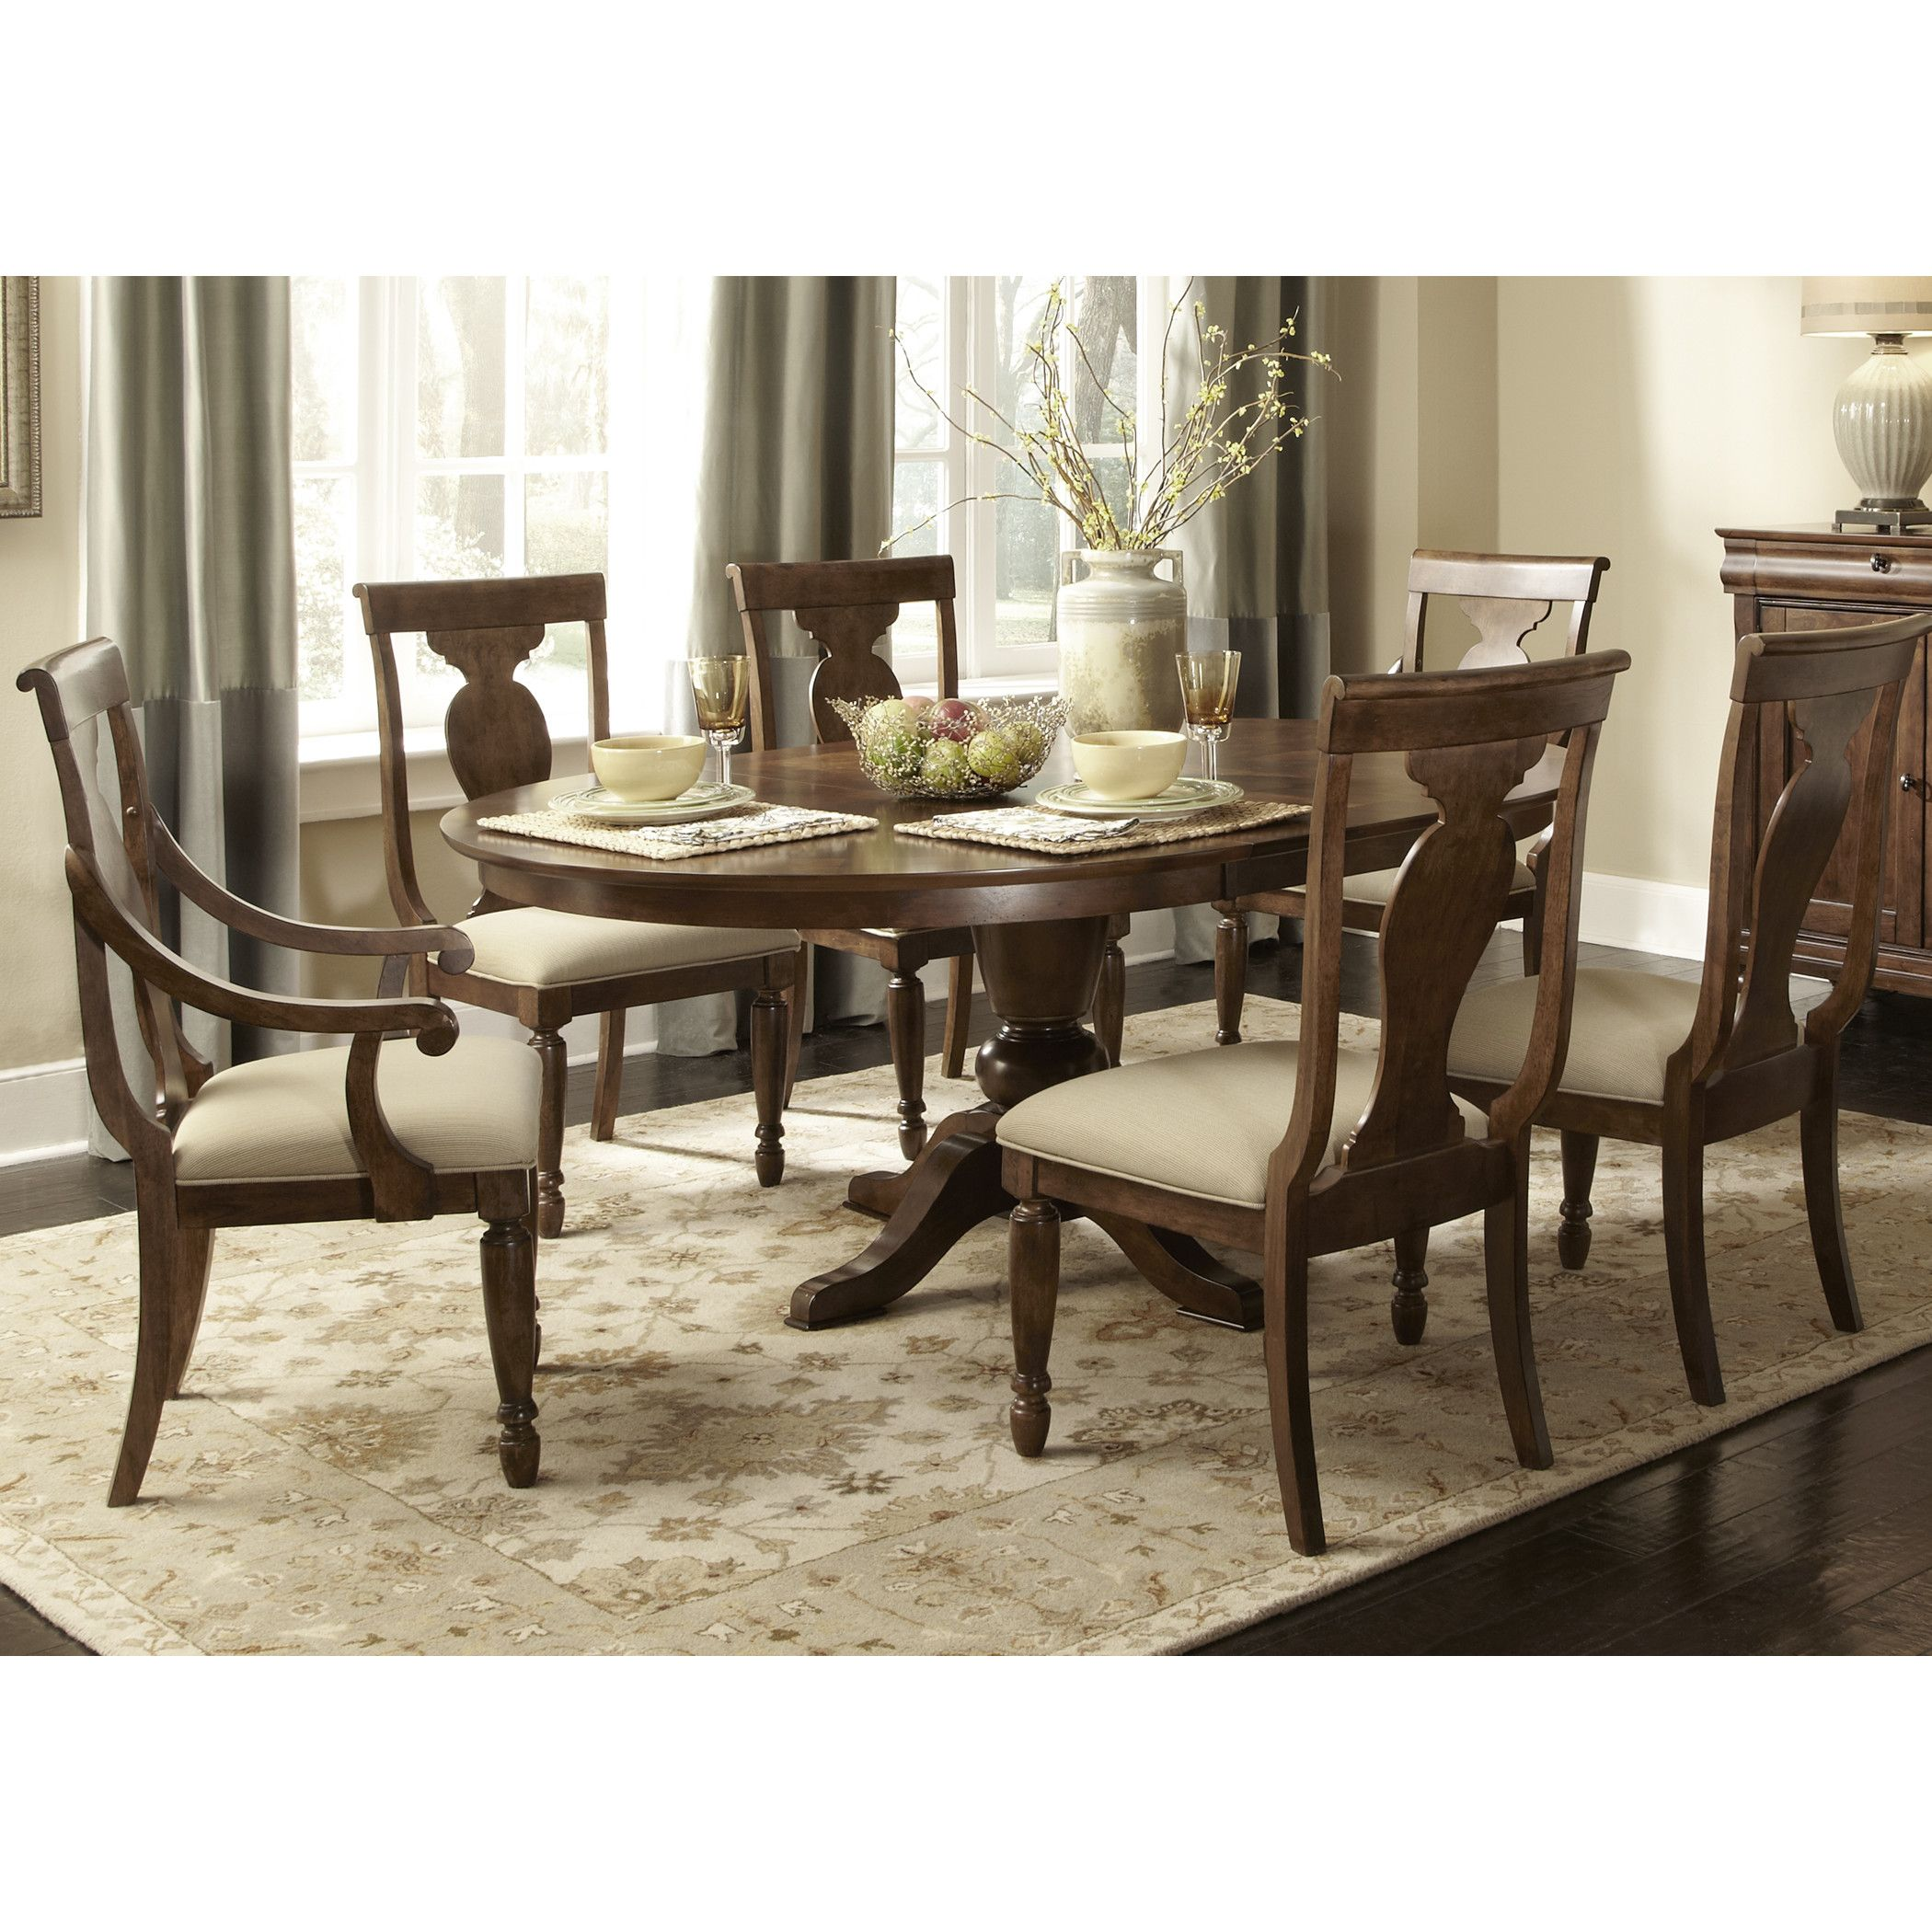 Room · Liberty Furniture Rustic Traditions 7 Piece Dining Set